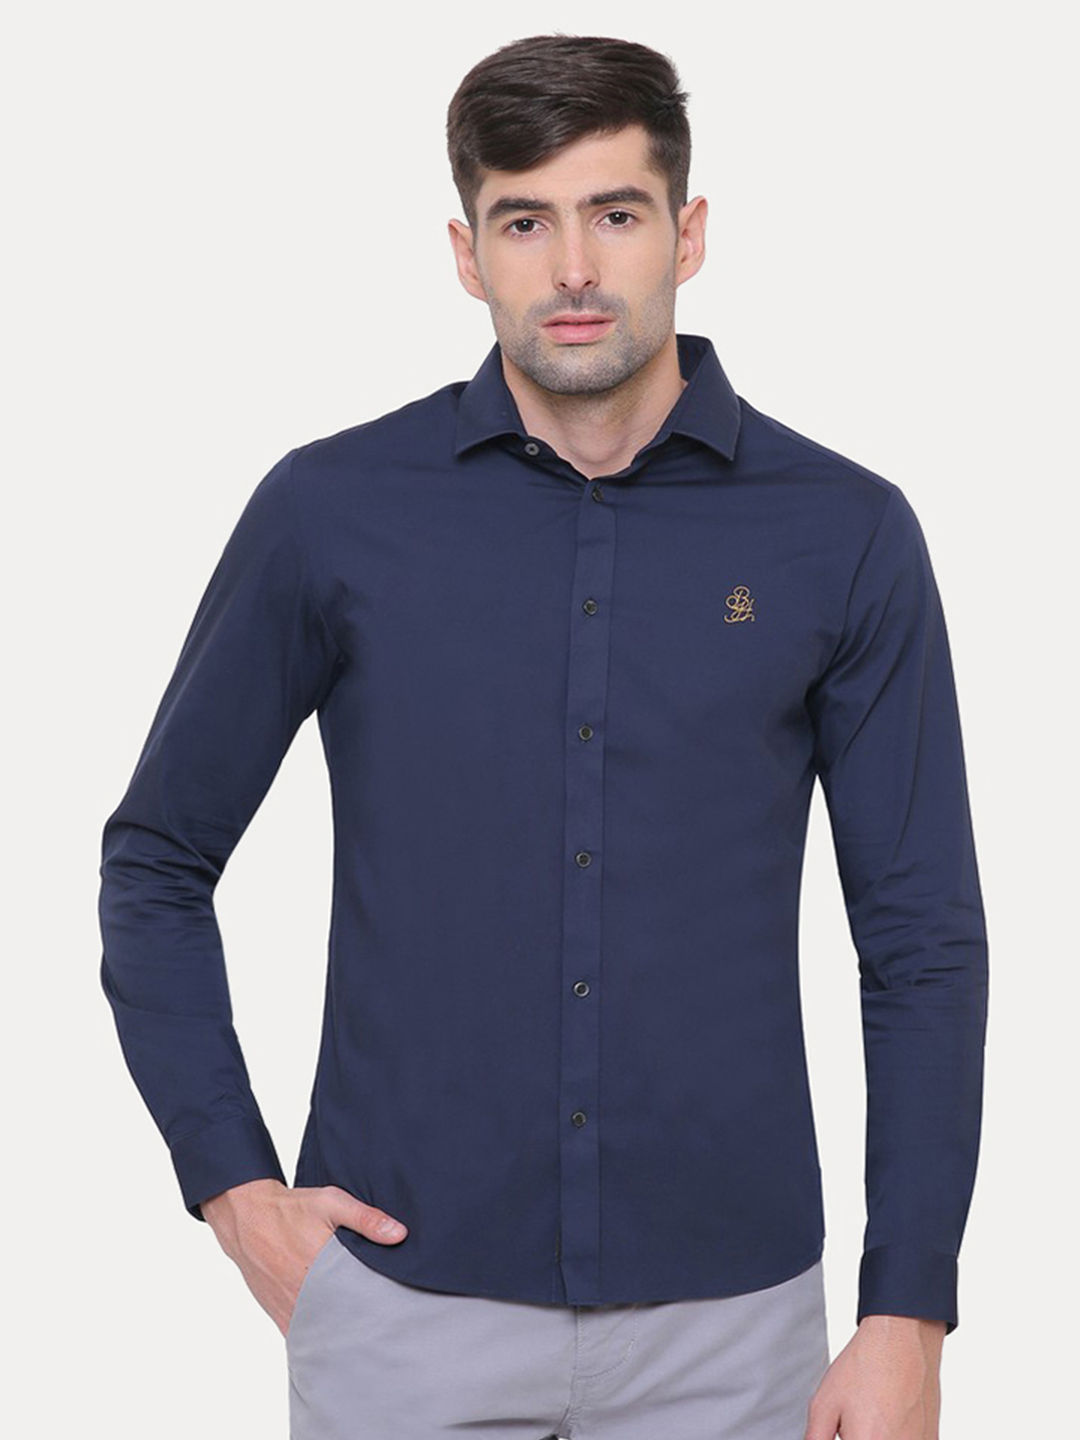 NAVY BLUE SOLID CASUAL SHIRT